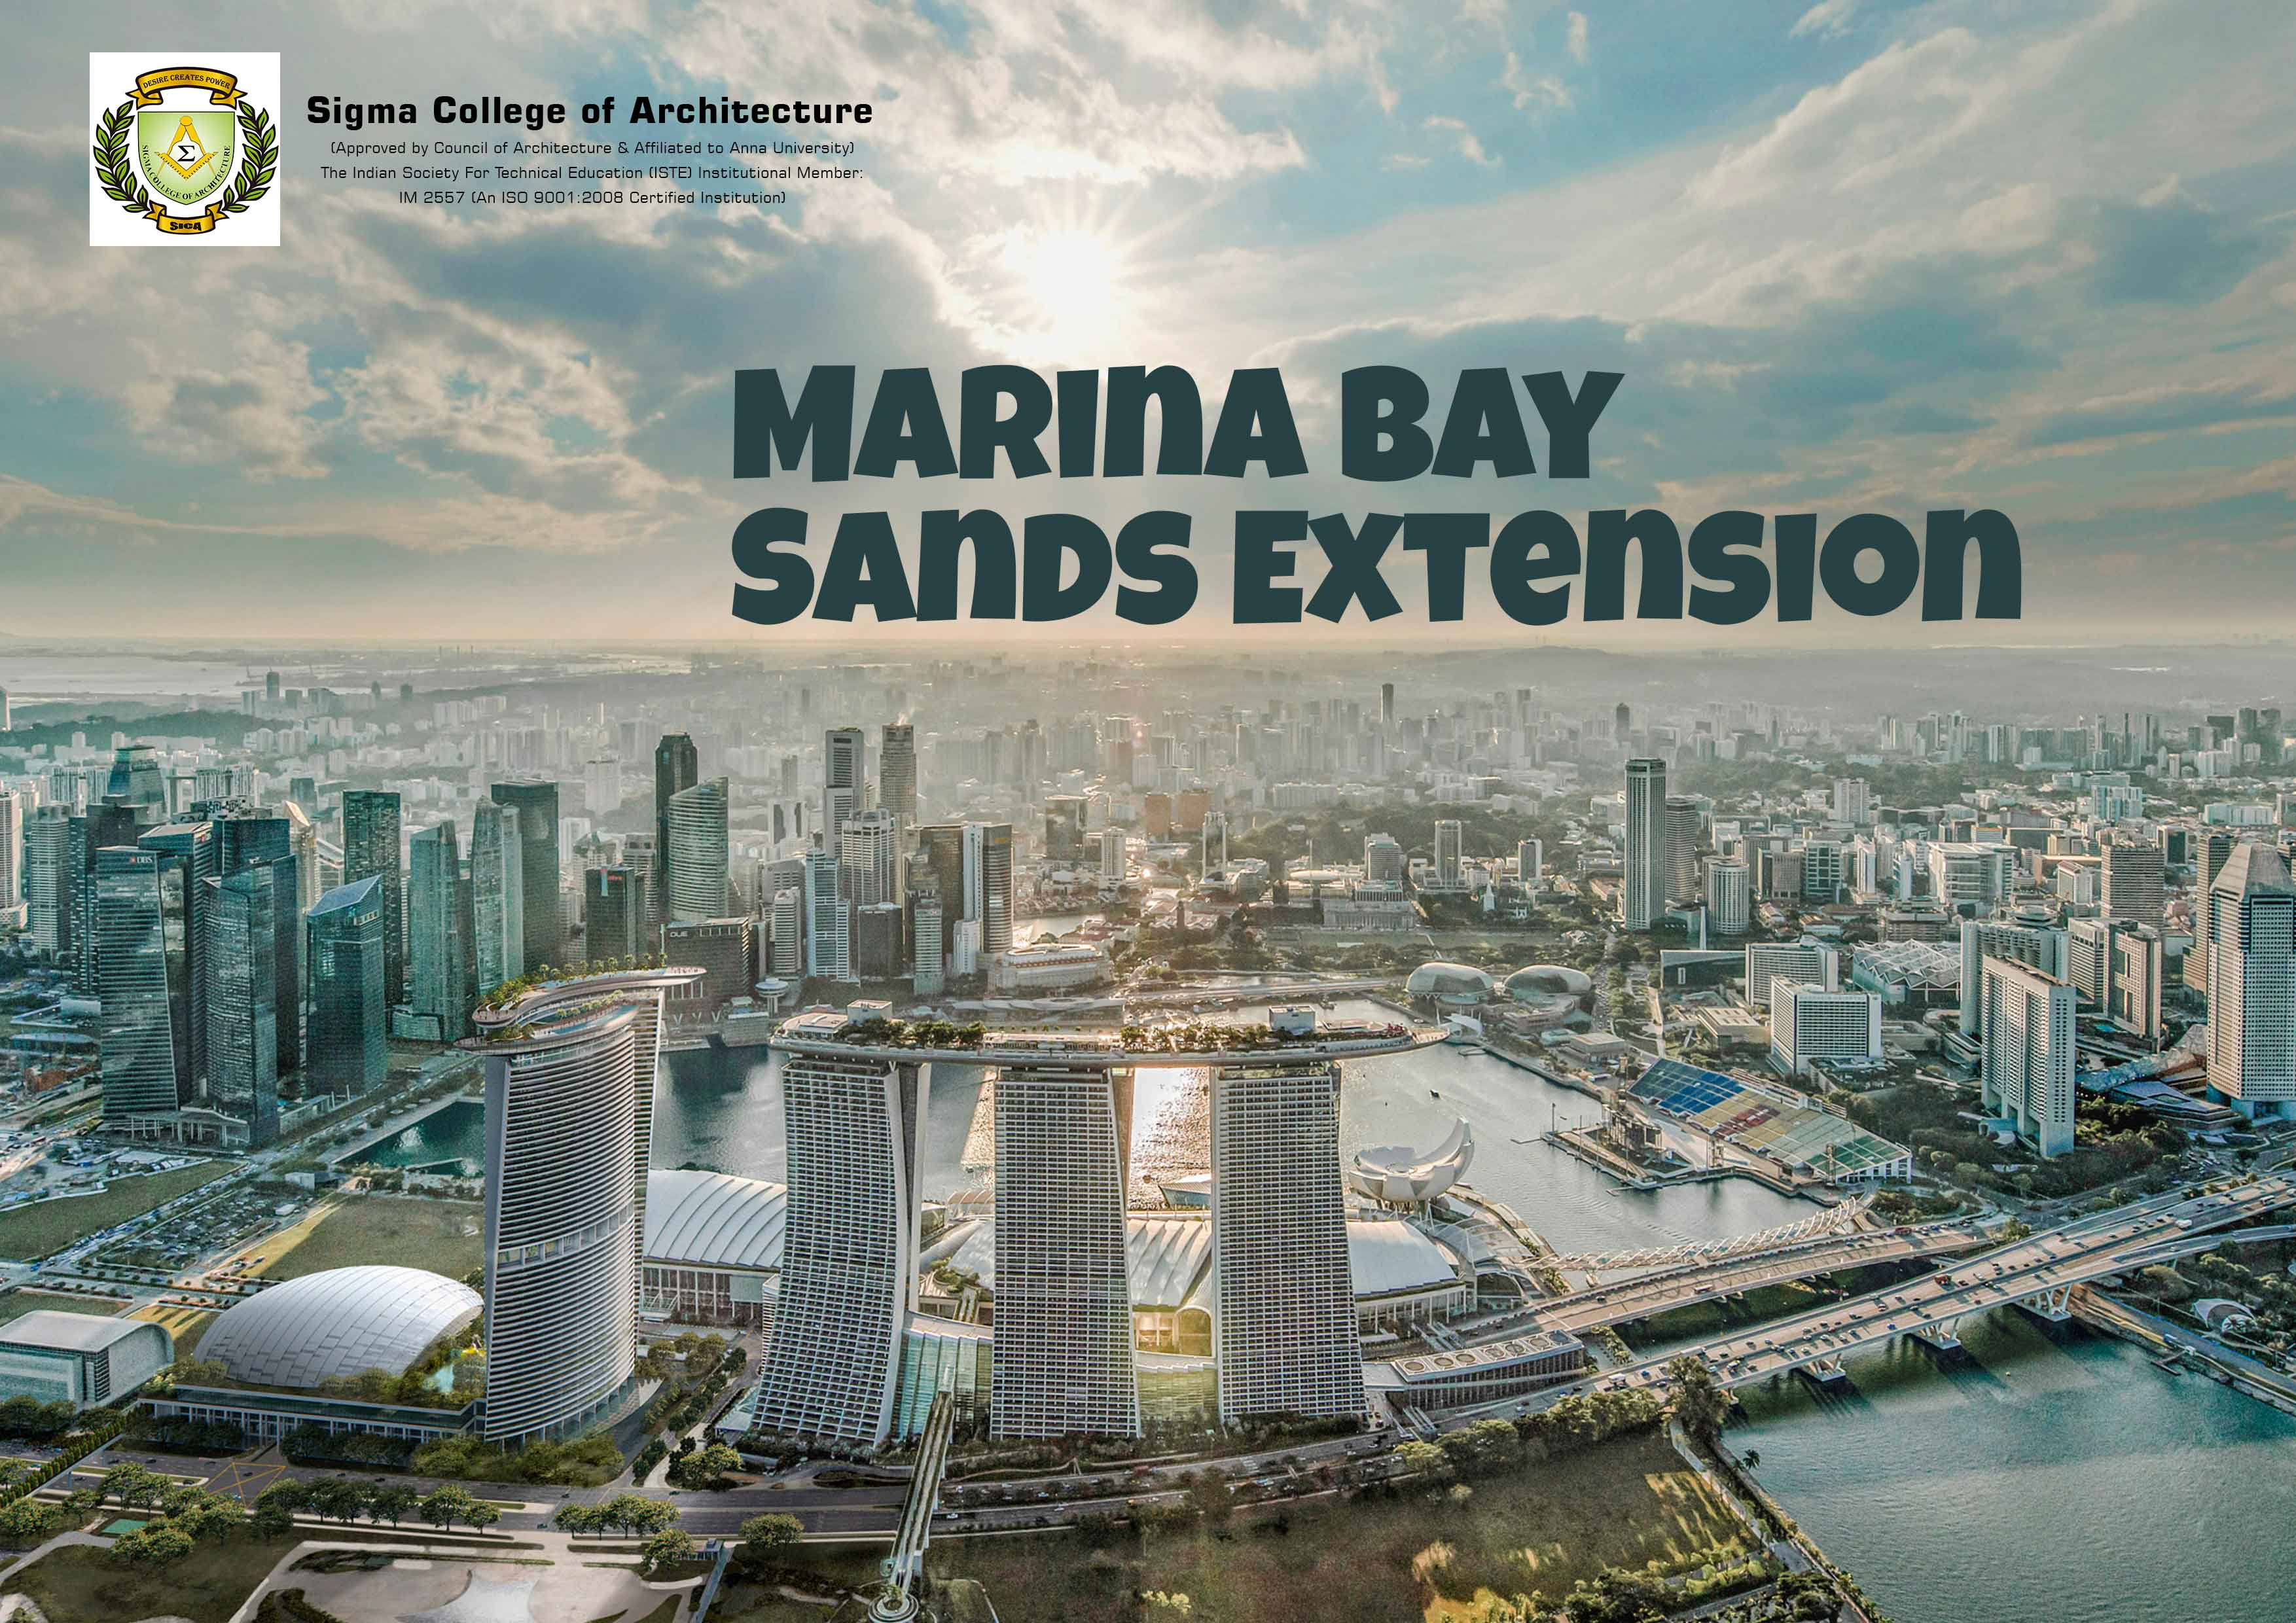 Marina Bay Sands Extension